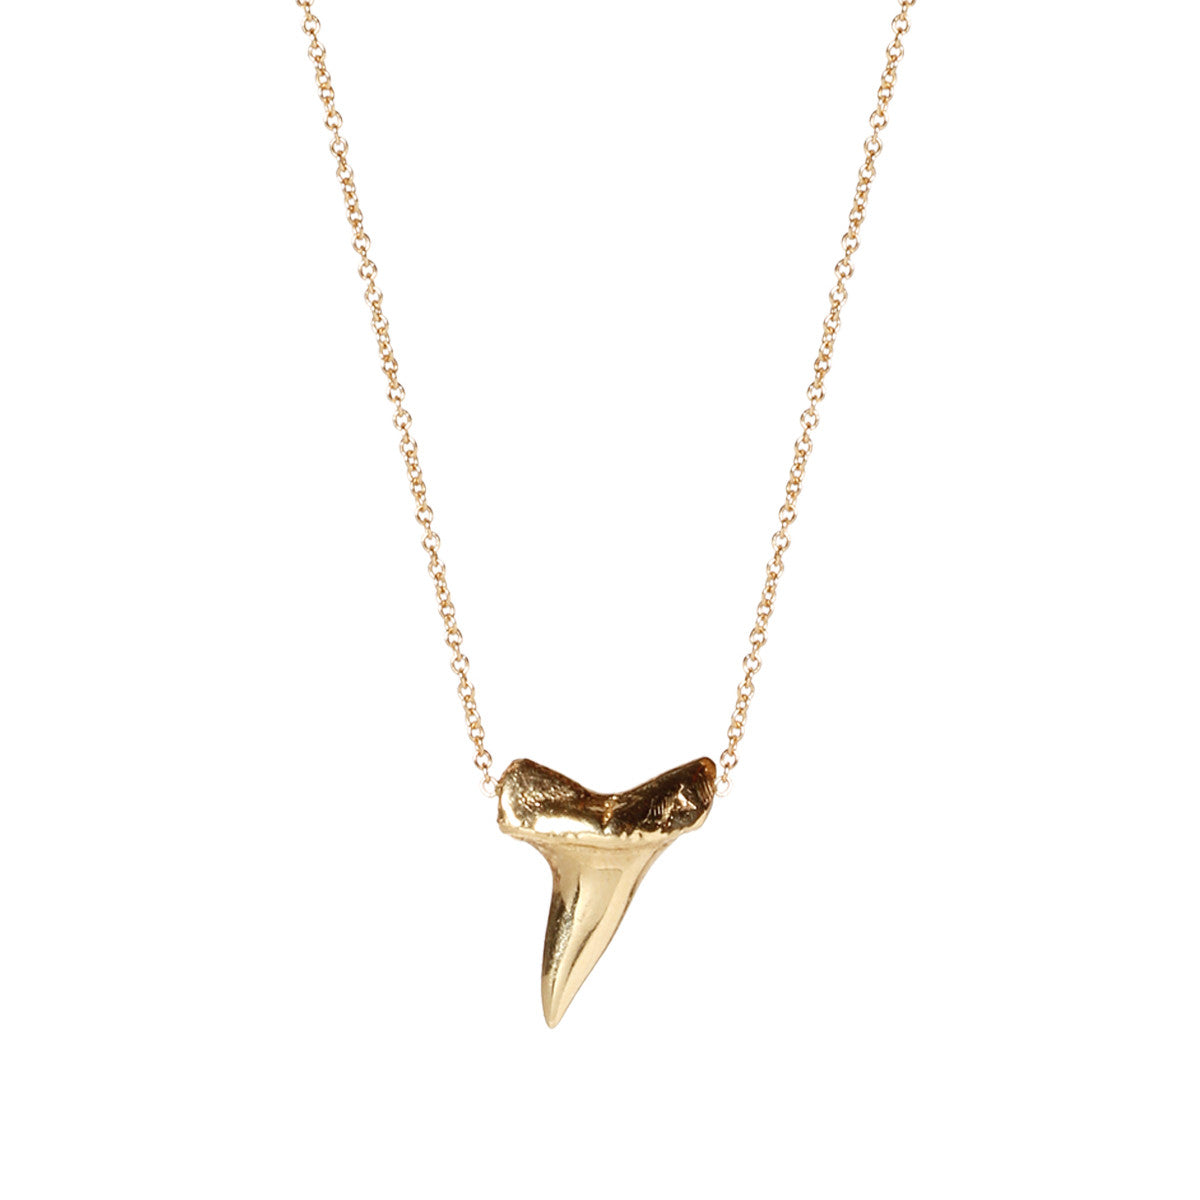 14k sharks tooth necklace